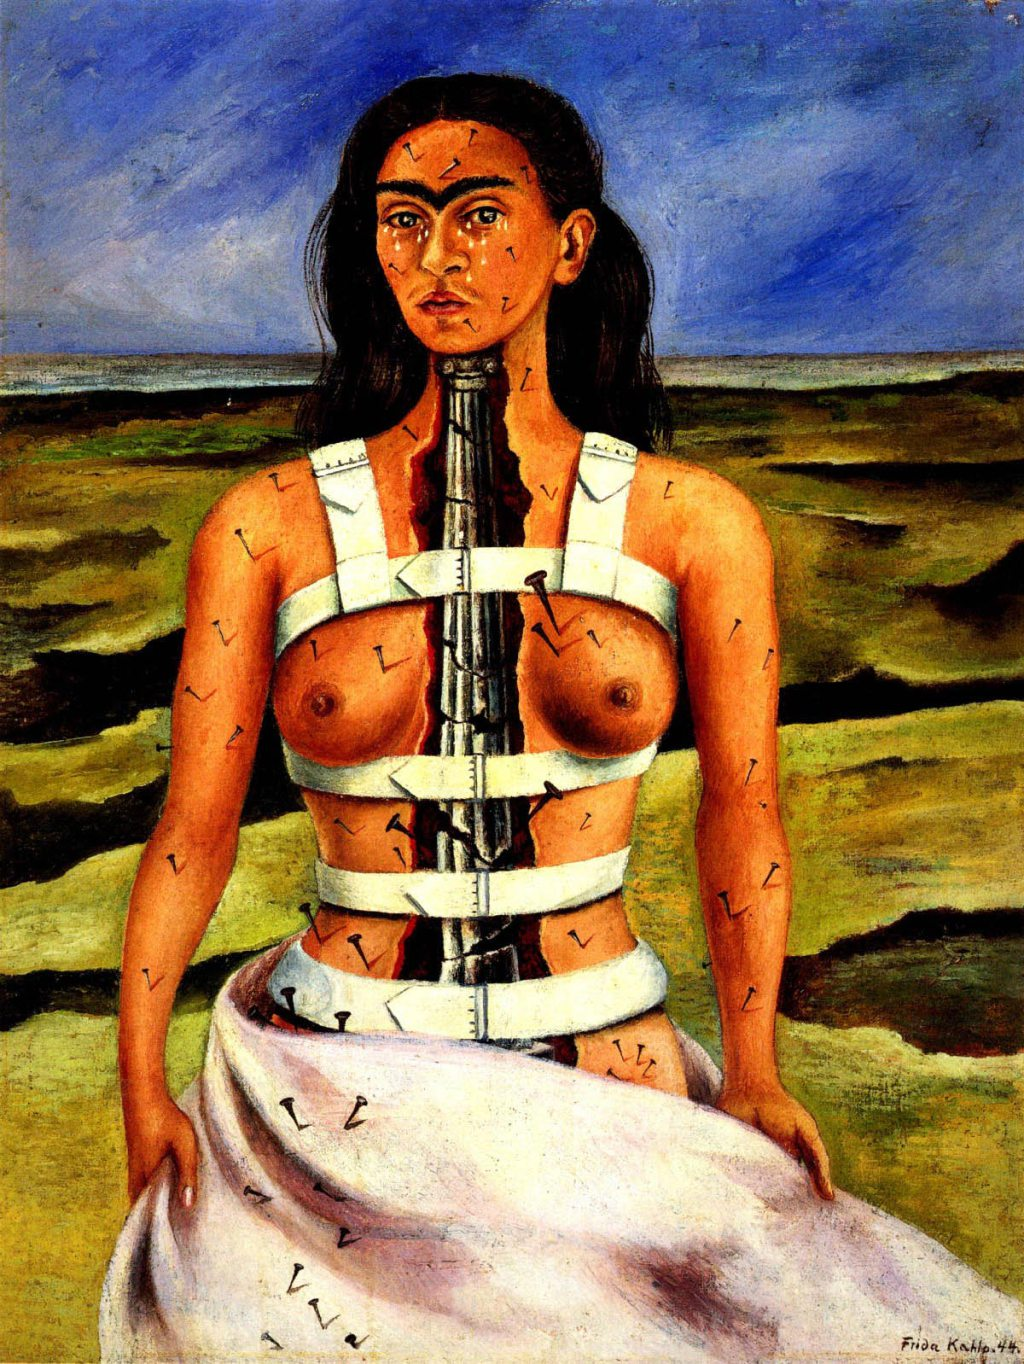 Frida Kahlo, Broken Column (La Columna Rota), 1944, oil on masonite. Collection of Dolores Olmedo Mexico City, Mexico. Credit: © 2015 Banco de México Diego Rivera Frida Kahlo Museums Trust, Mexico, D.F. / Artists Rights Society (ARS), New York. Reproduction, including downloading of Frida Kahlo works is prohibited by copyright laws and international conventions without the express written permission of Artists Rights Society (ARS), New York.